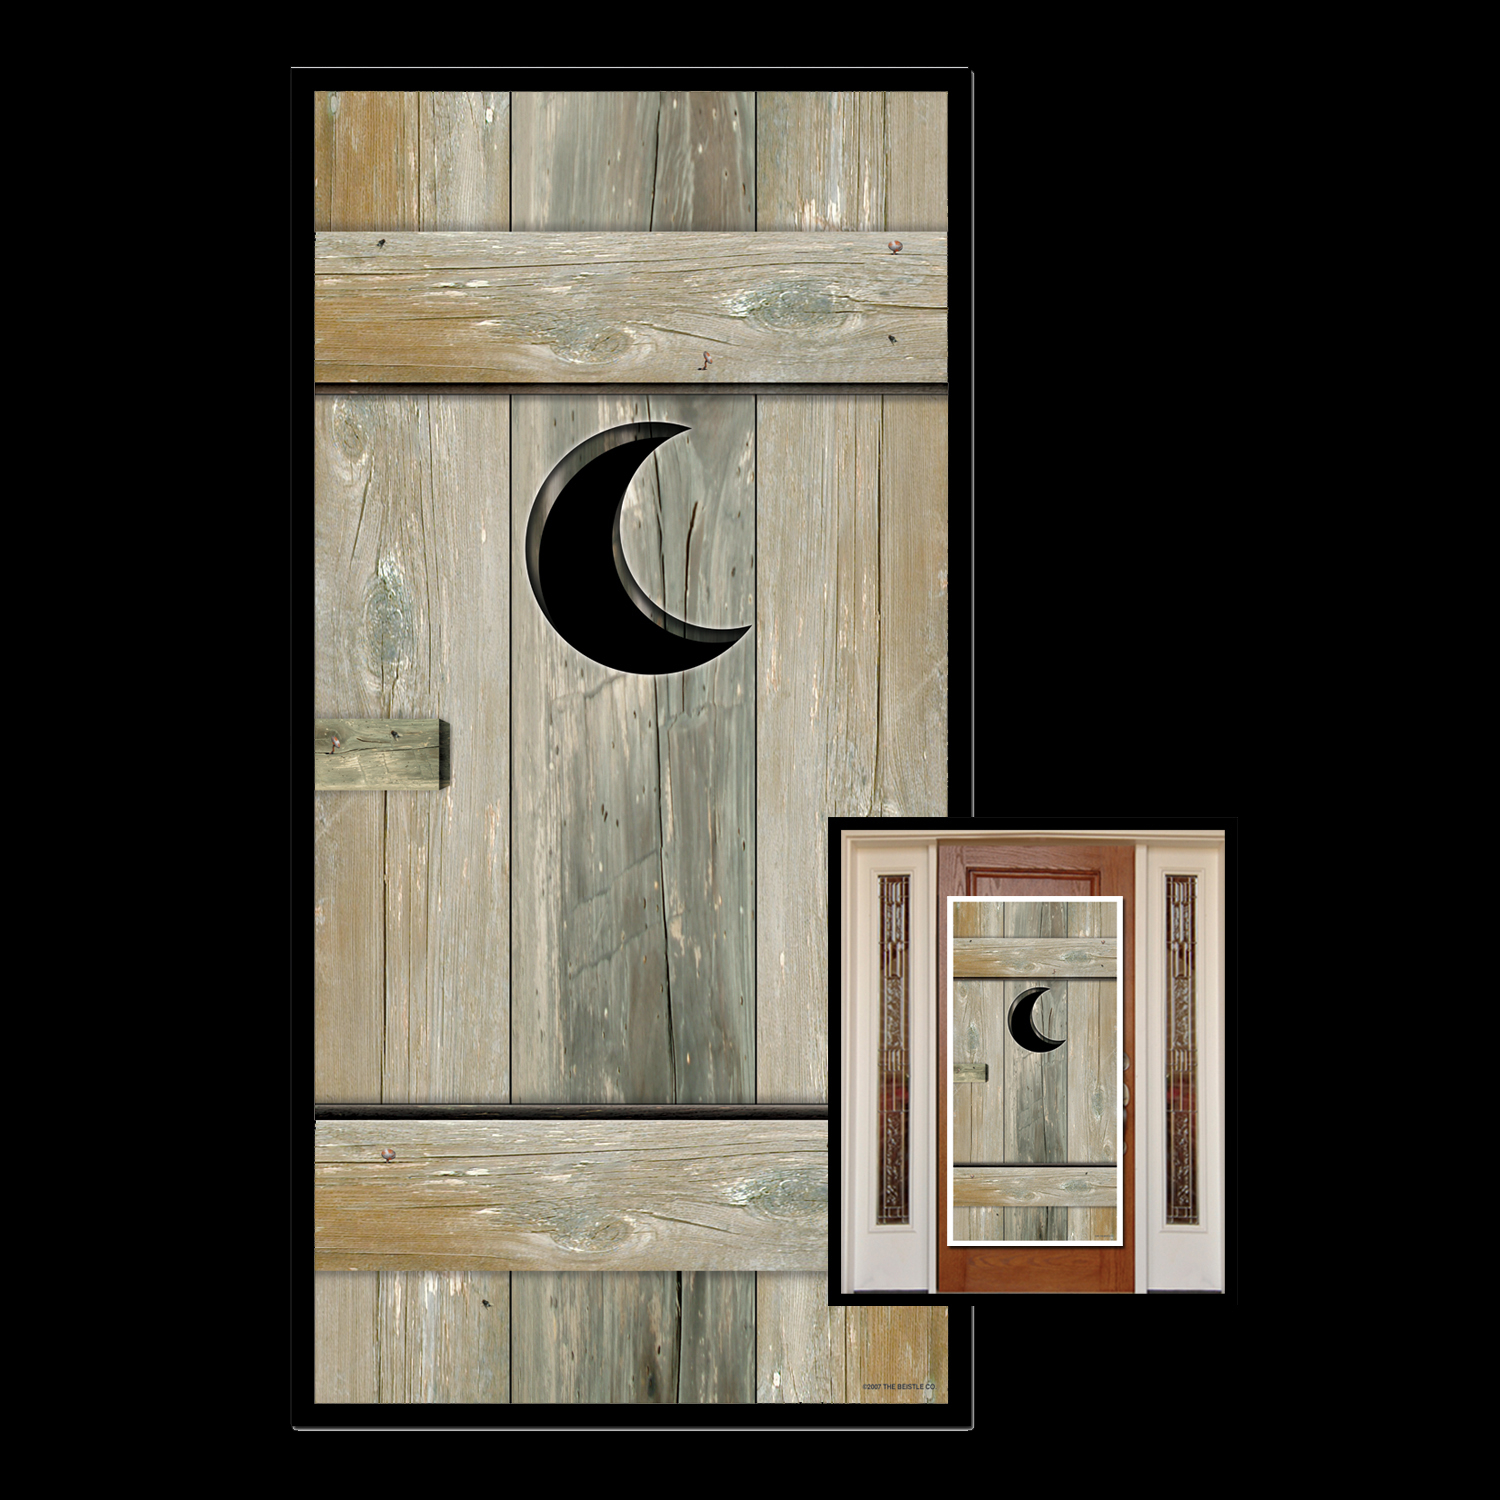 Funny Toilet Loo Outhouse Latrine Privy Bathroom Door Cover Shower Mural Restroom Wall Decor Western Scene